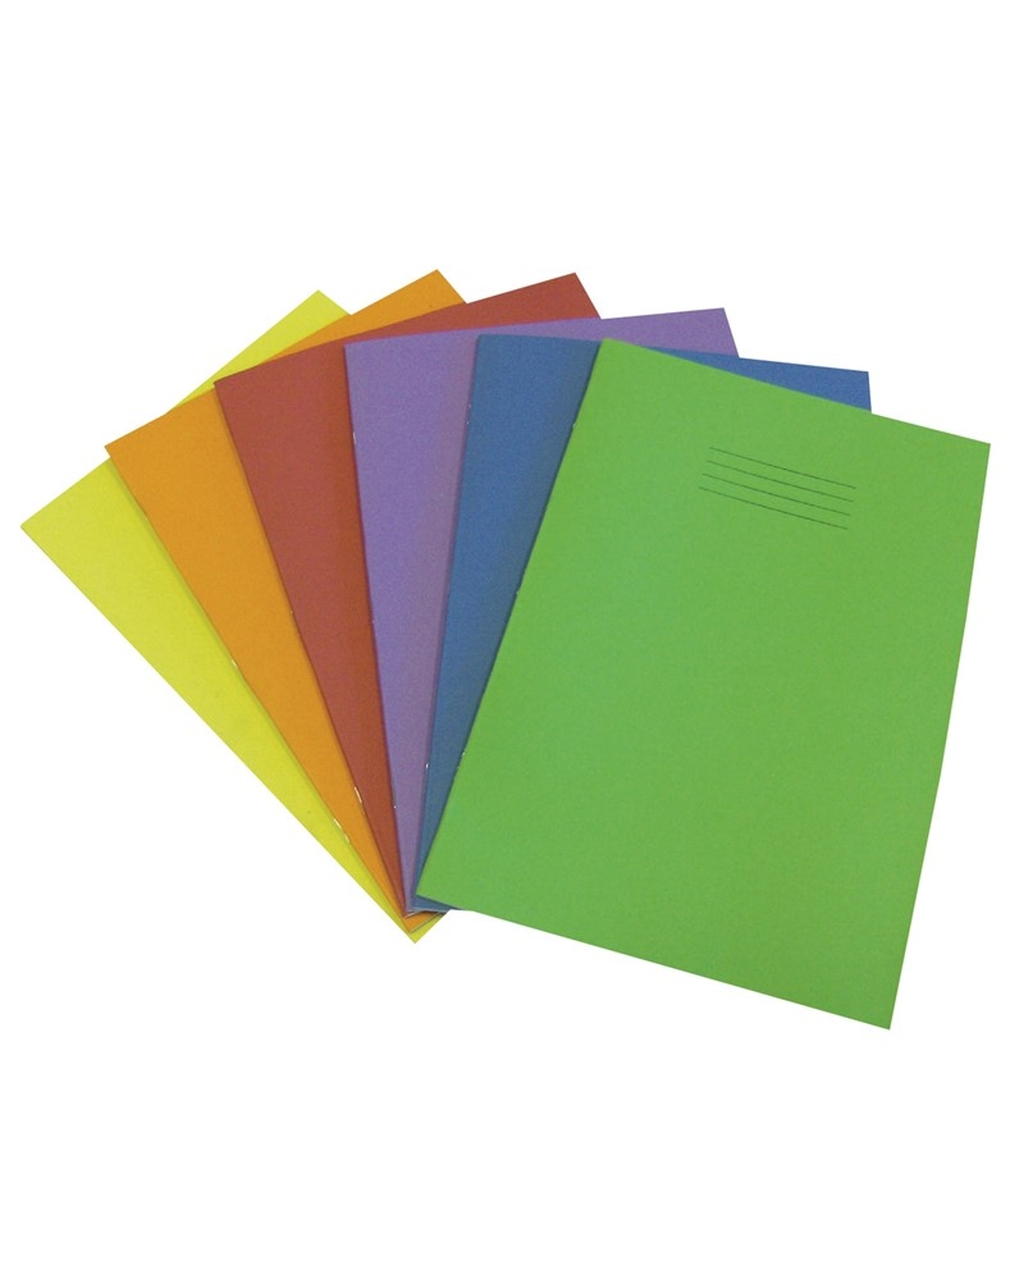 Exercise Book A4 (297 x 210mm) Light Green Cover 8mm Ruled & Margin 48 Pages